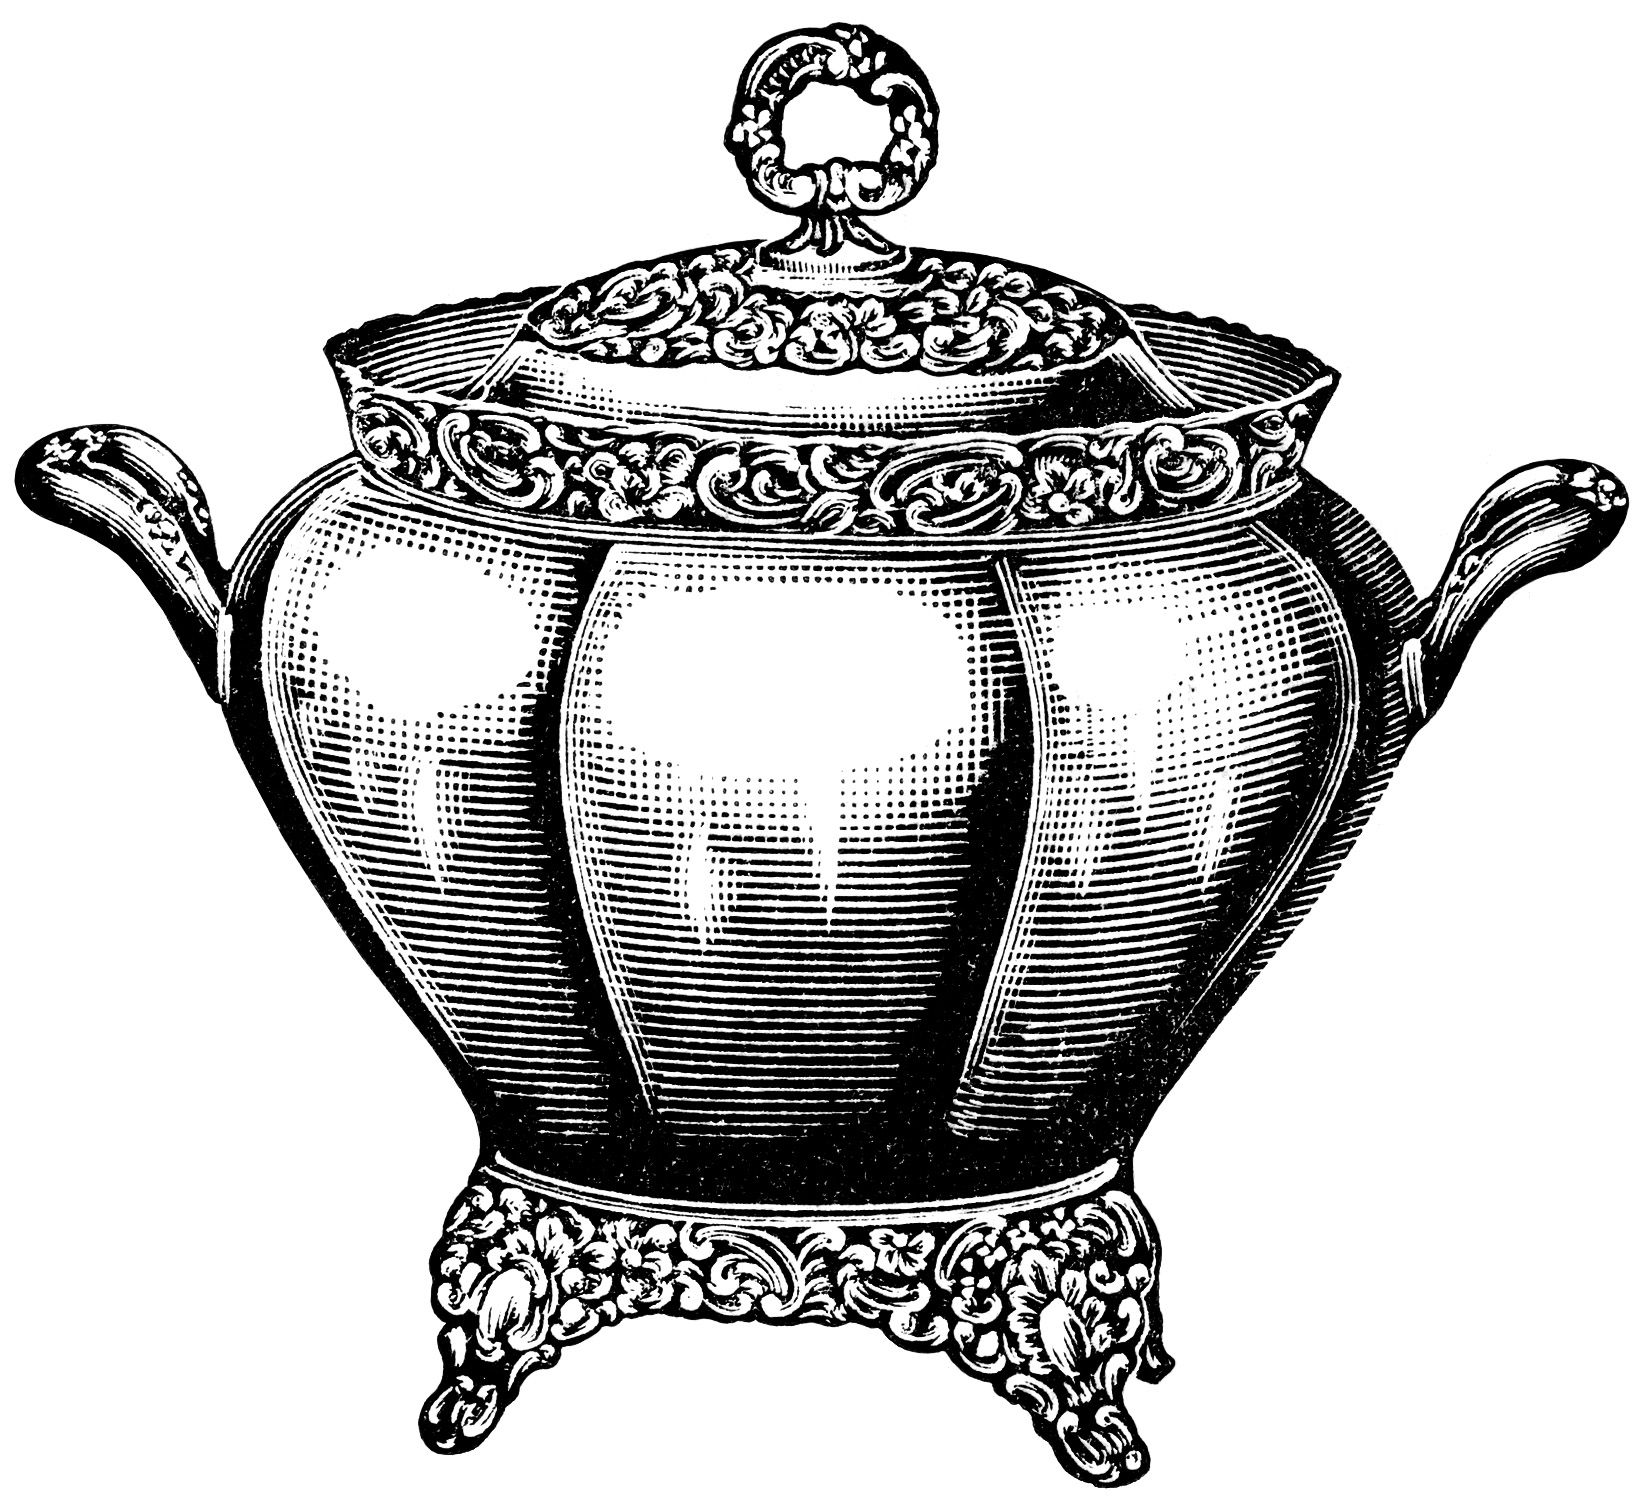 soup tureen free vintage clip art old design shop blog rh olddesignshop com antique clip art borders antique clip art posters